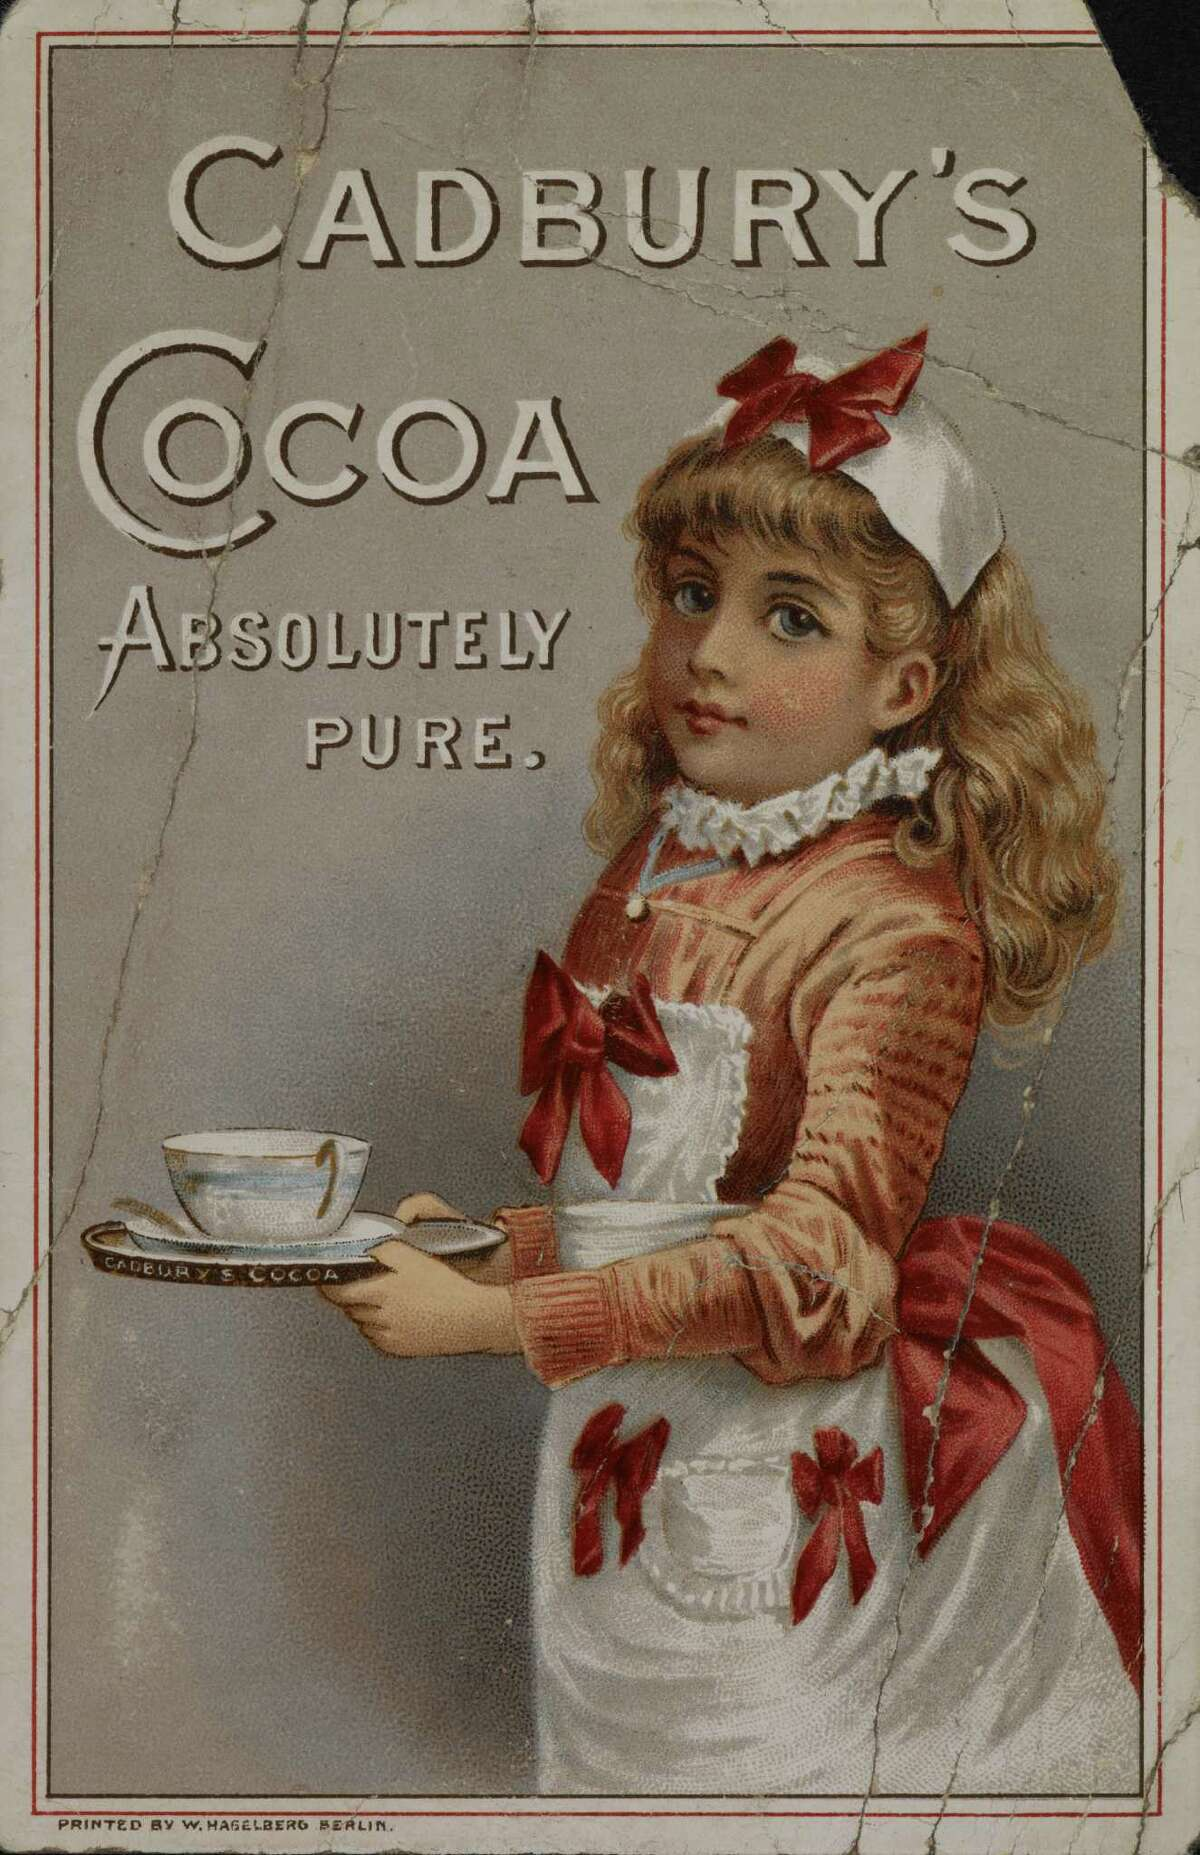 A Cadbury poster printed in 1885 with an illustration of a girl holding a cup of Cadbury 's cocoa.